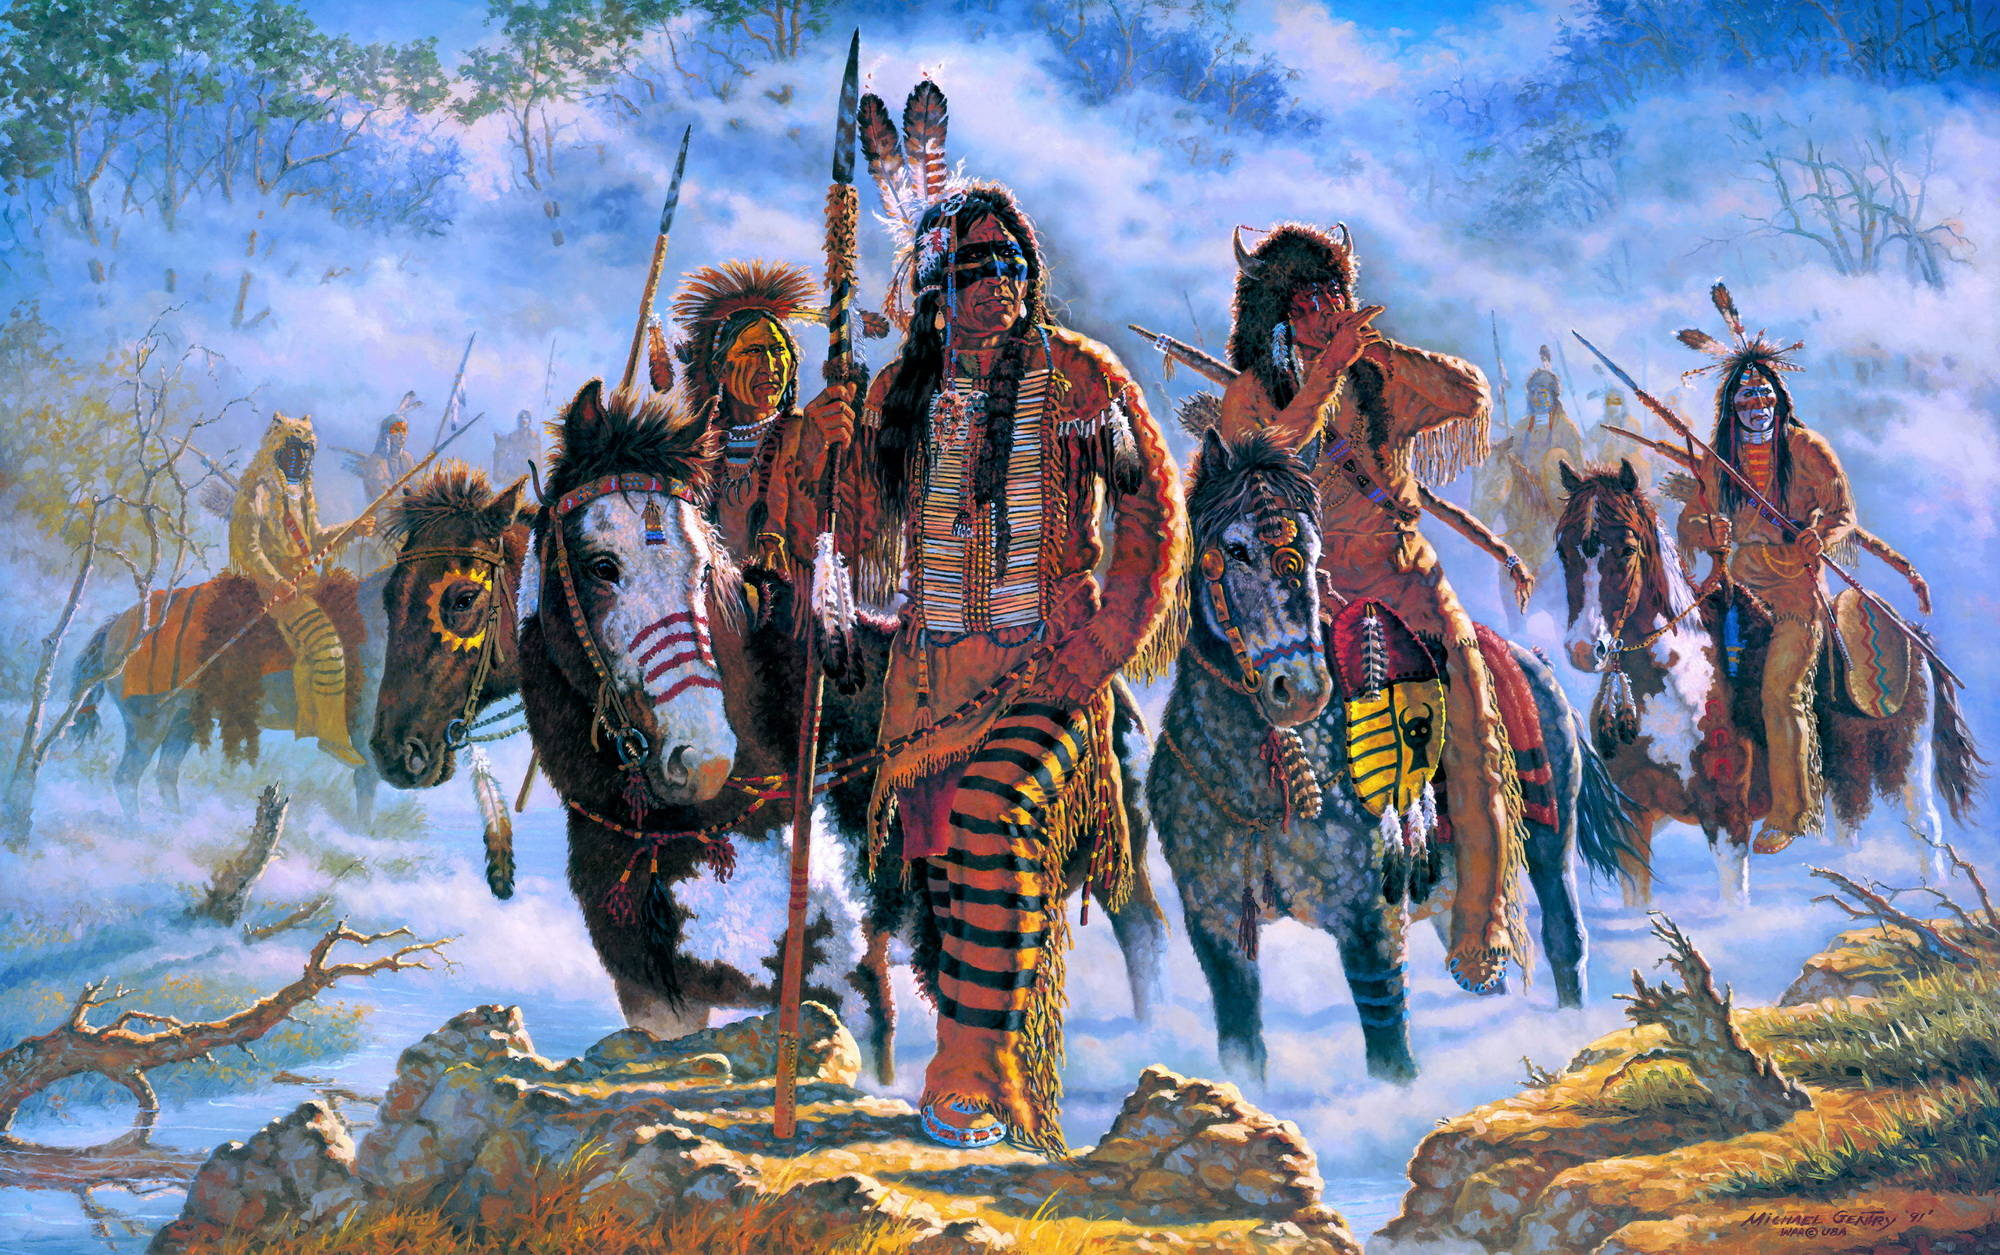 how did the culture of the plains indians specifically the lakota sioux change in the late 19th cent Highlight at least one engagement in your answerhow did the culture of the plains indians, specifically the lakota sioux, change in the late 19th centurydescribe.